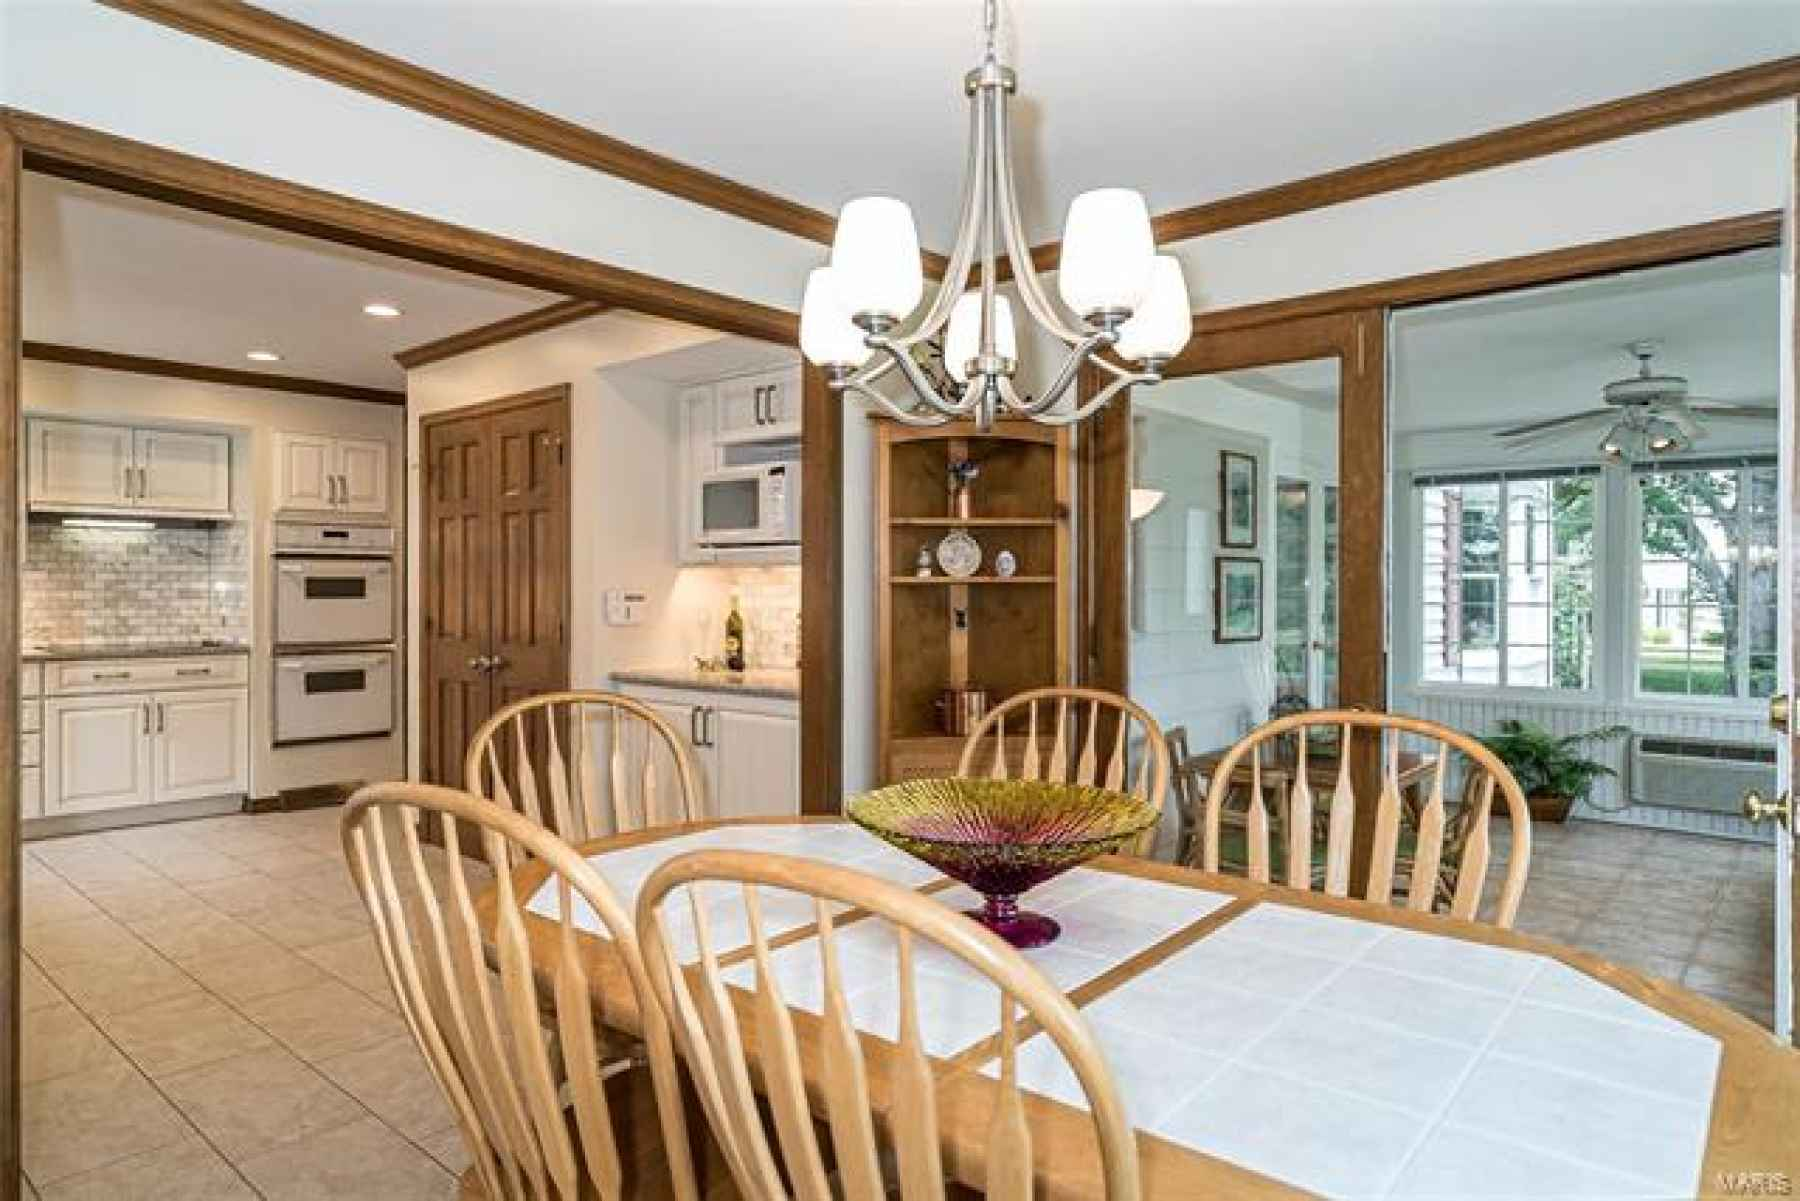 Fantastic view of Kitchen to Sun room with french doors open.